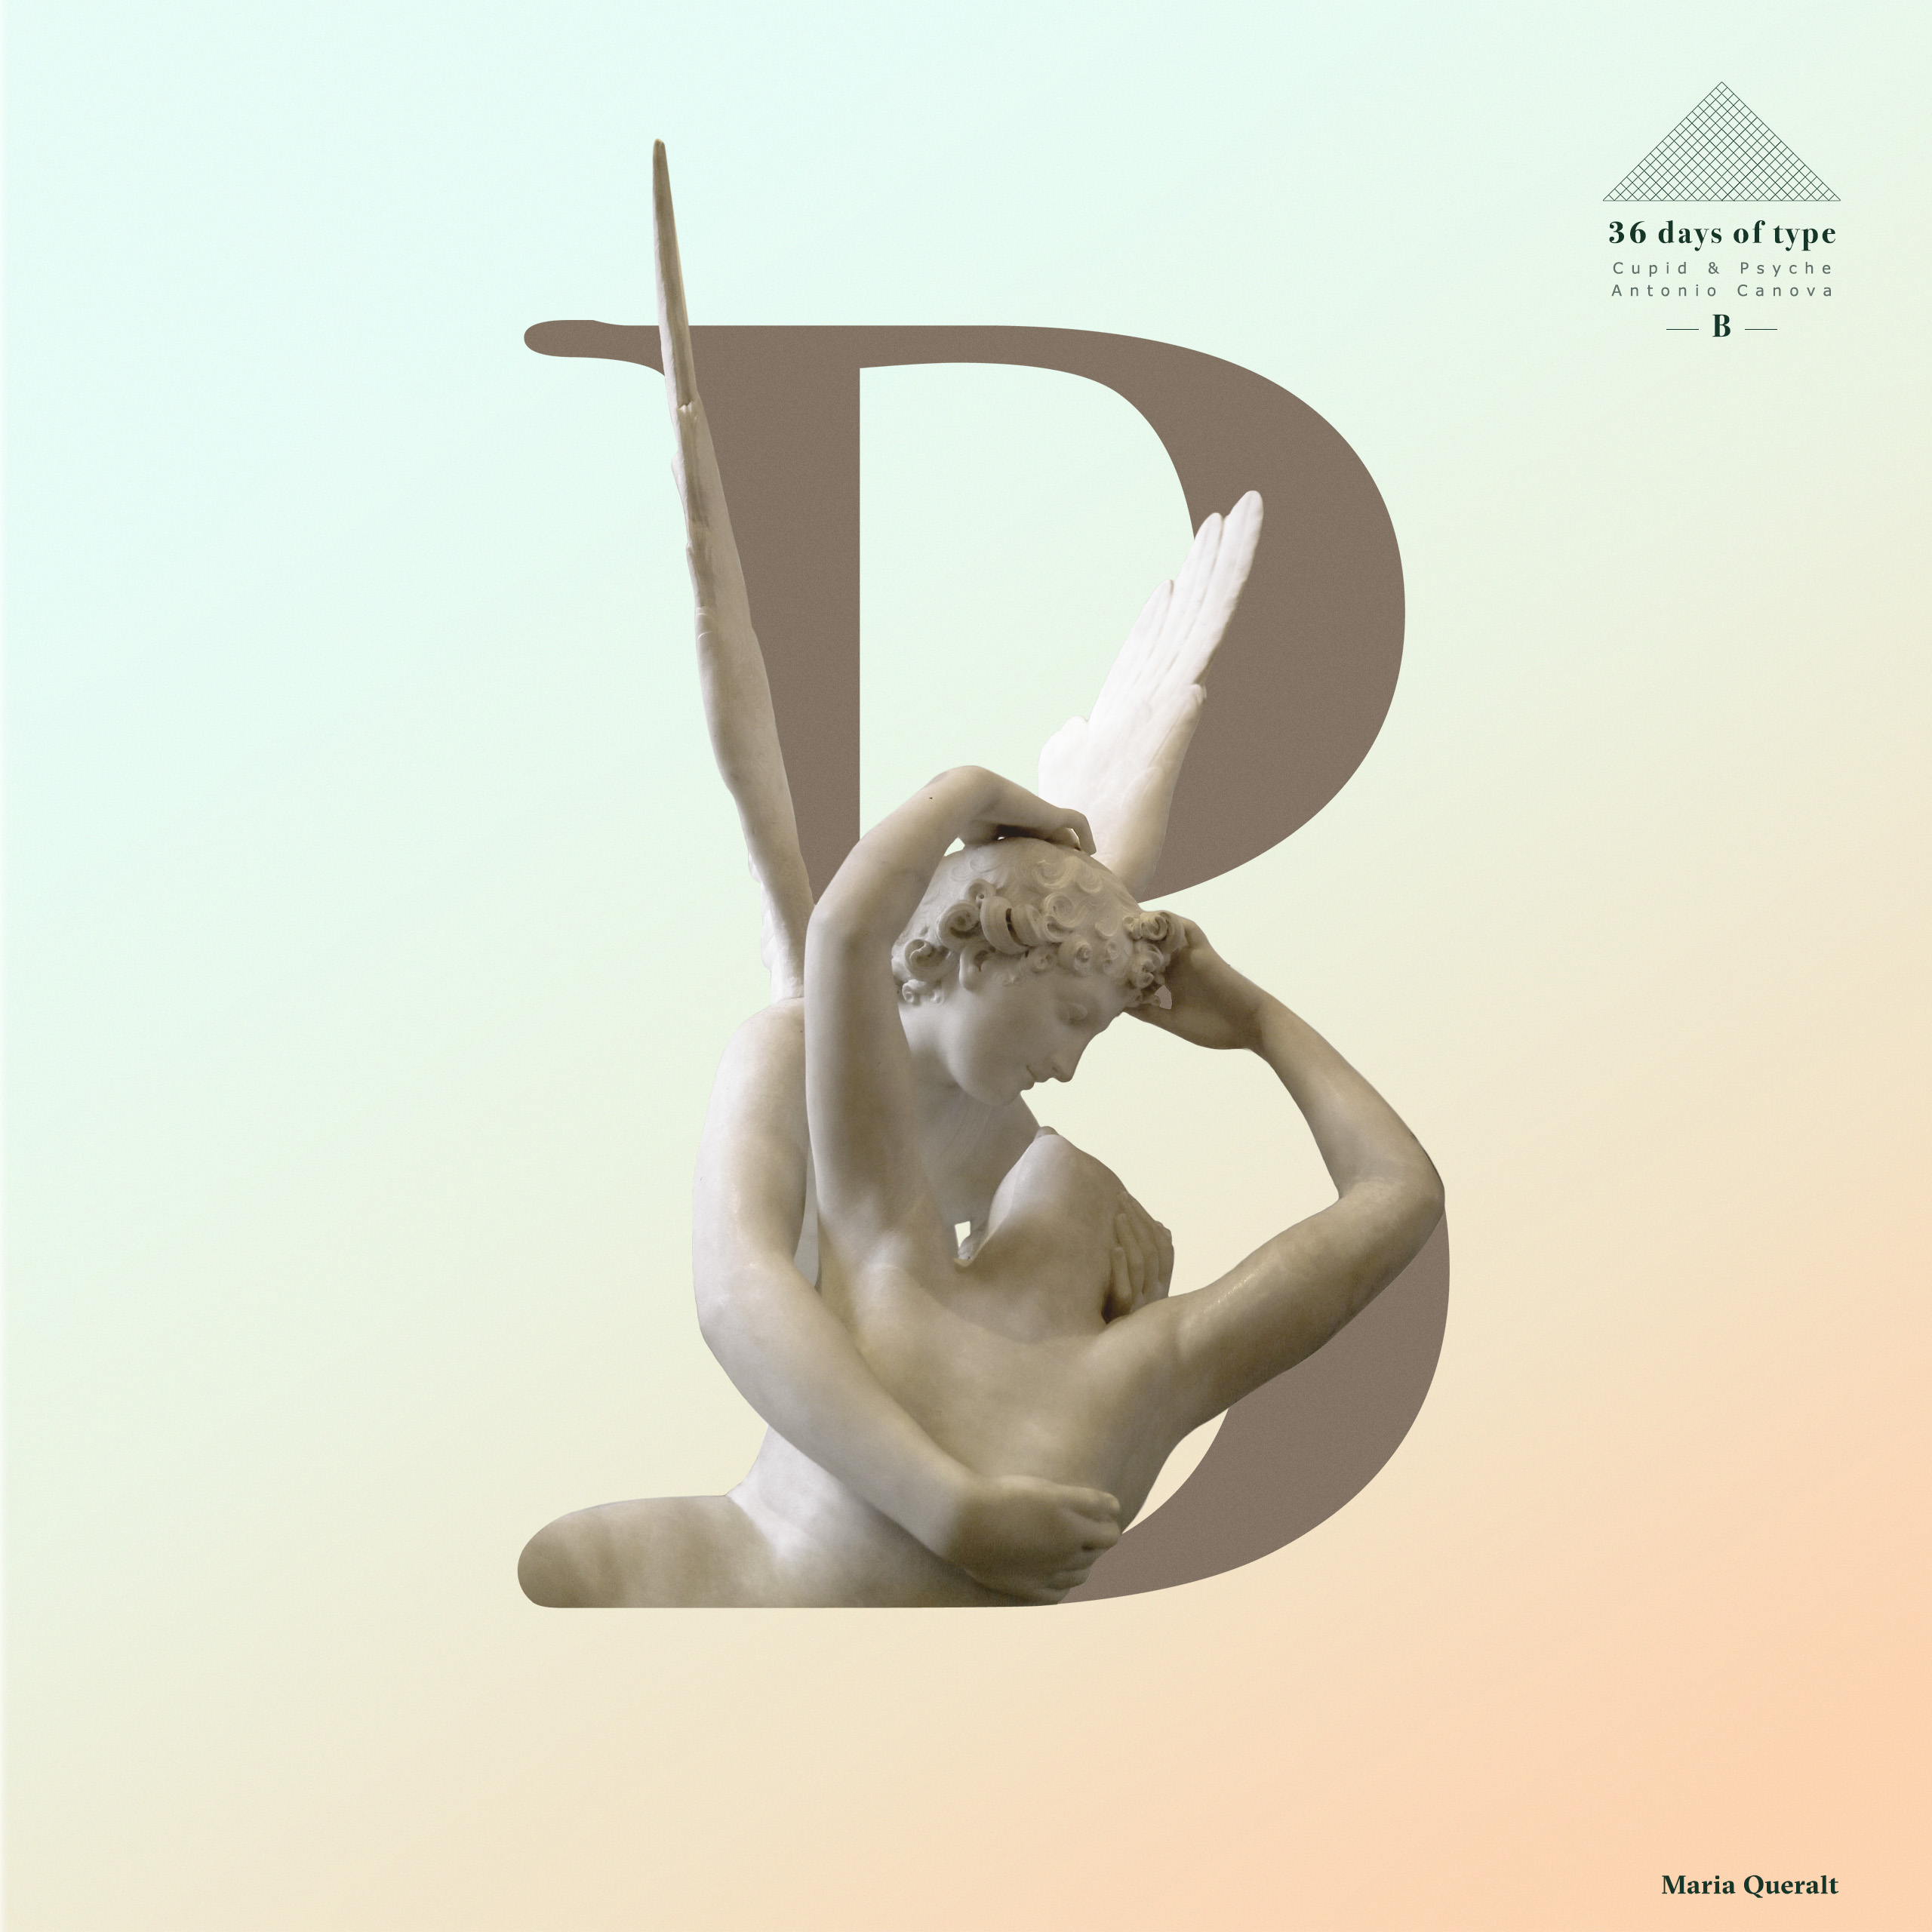 "Typography letter B of the Double Exposure Typography Set based on Antonio Canova's sculpture ""Psyche Revived by Cupid's Kiss "" for the 36 days of type project. Photography, art direction, concept, design and retouch by Maria Queralt. Louvre Museum, Paris."